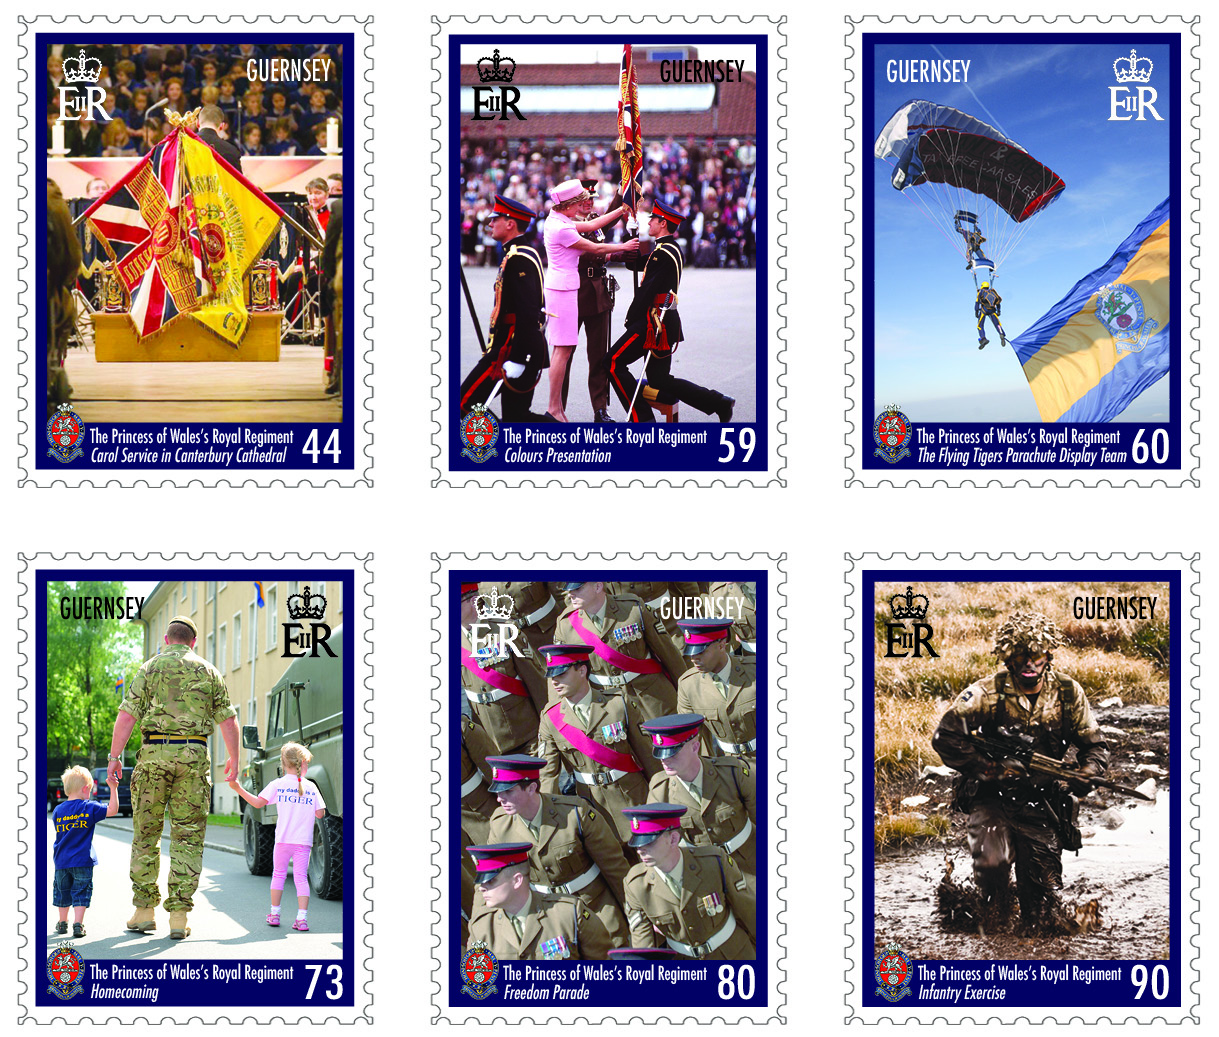 25th anniversary of The Princess of Wales's Royal Regiment celebrated with stamps